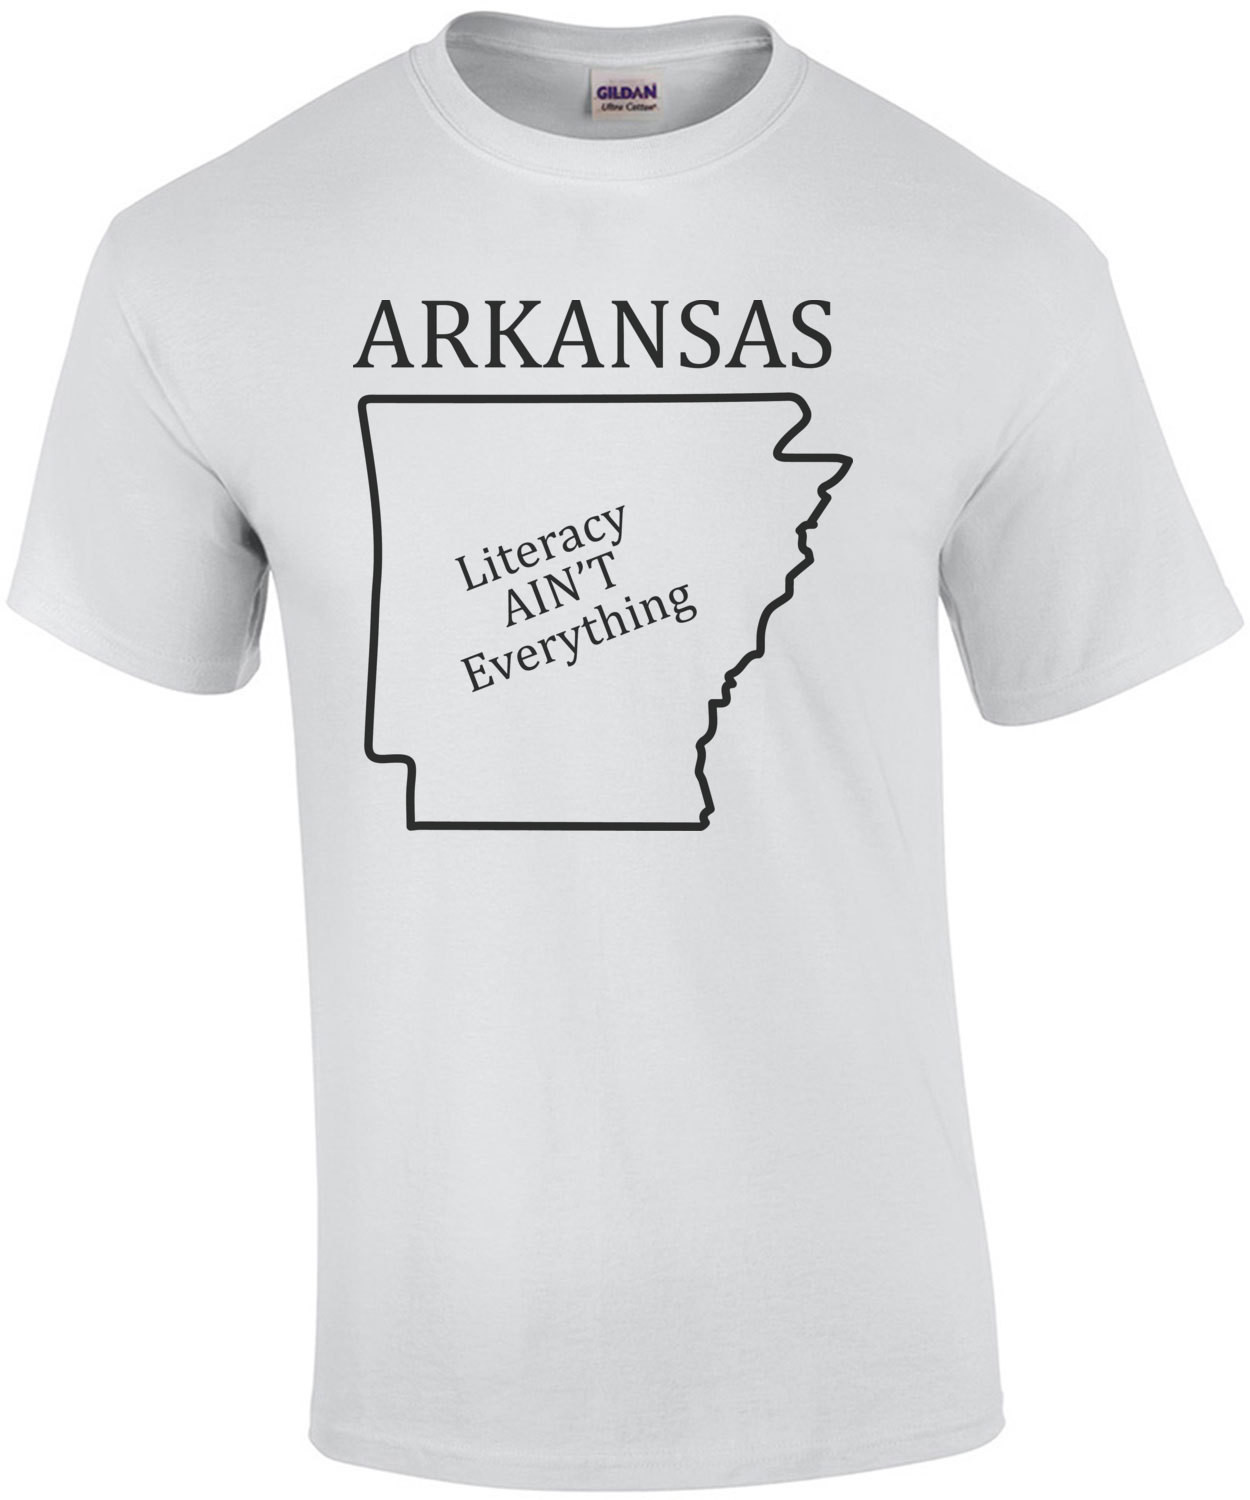 Arkansas - Literacy AIN'T Everything - Arkansas T-Shirt